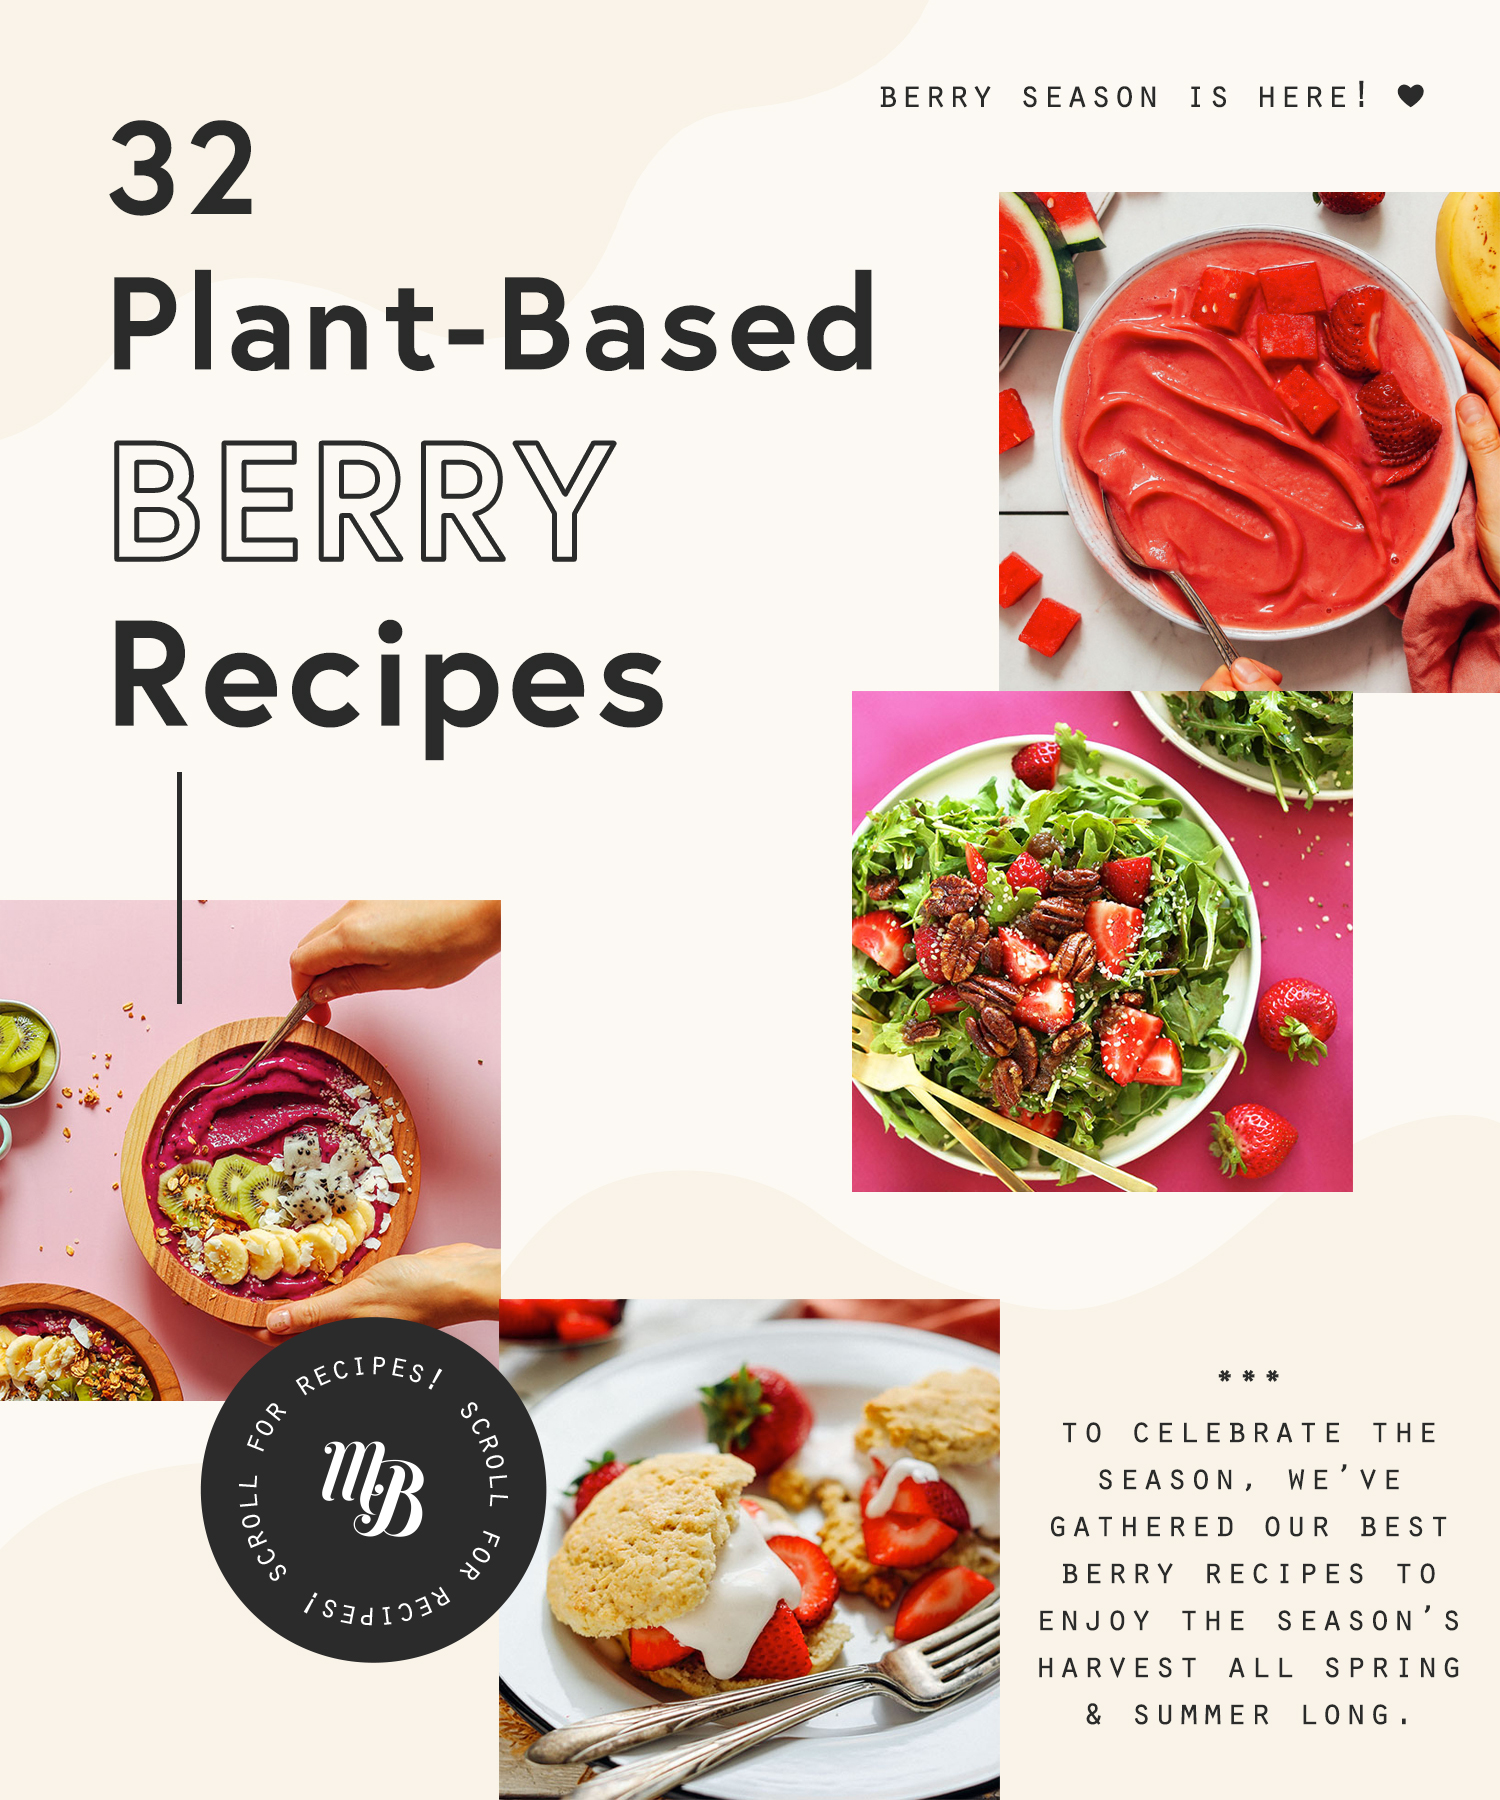 Assortment of plant-based berry recipes